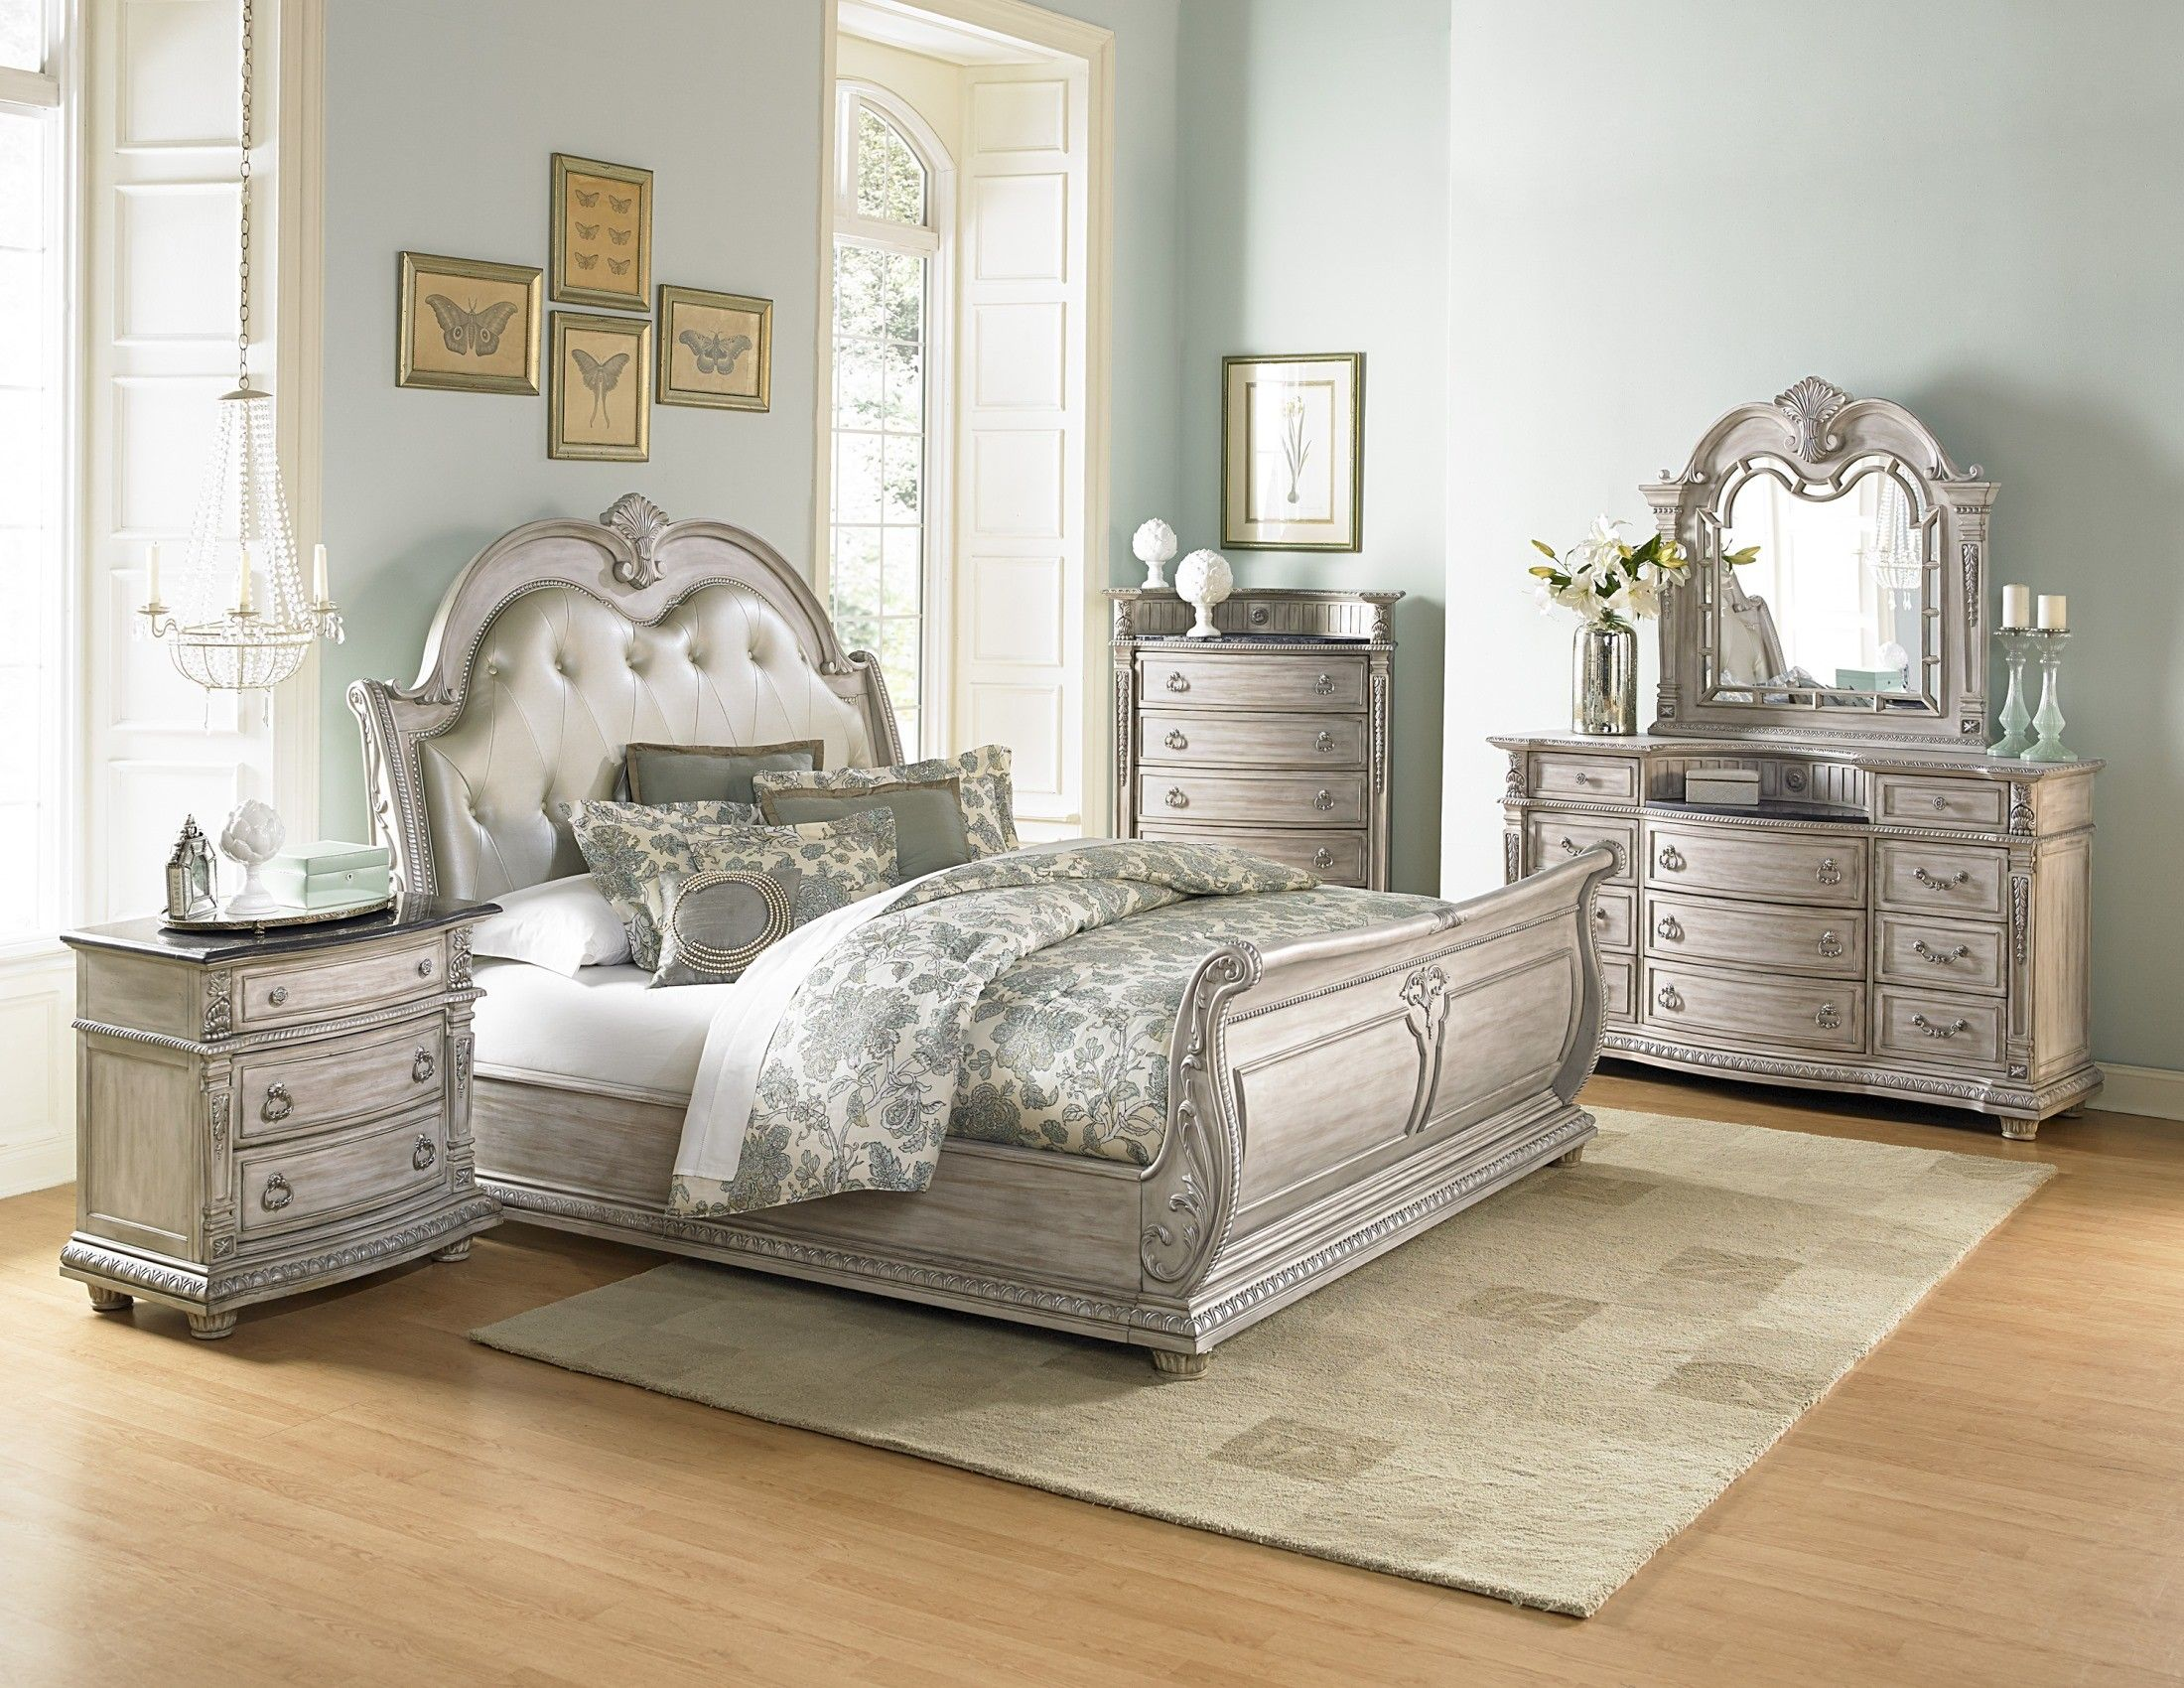 Palace Ii White Wash Bonded Leather Sleigh Bedroom Set Bedroom Sets Queen Sleigh Bedroom Set King Bedroom Sets